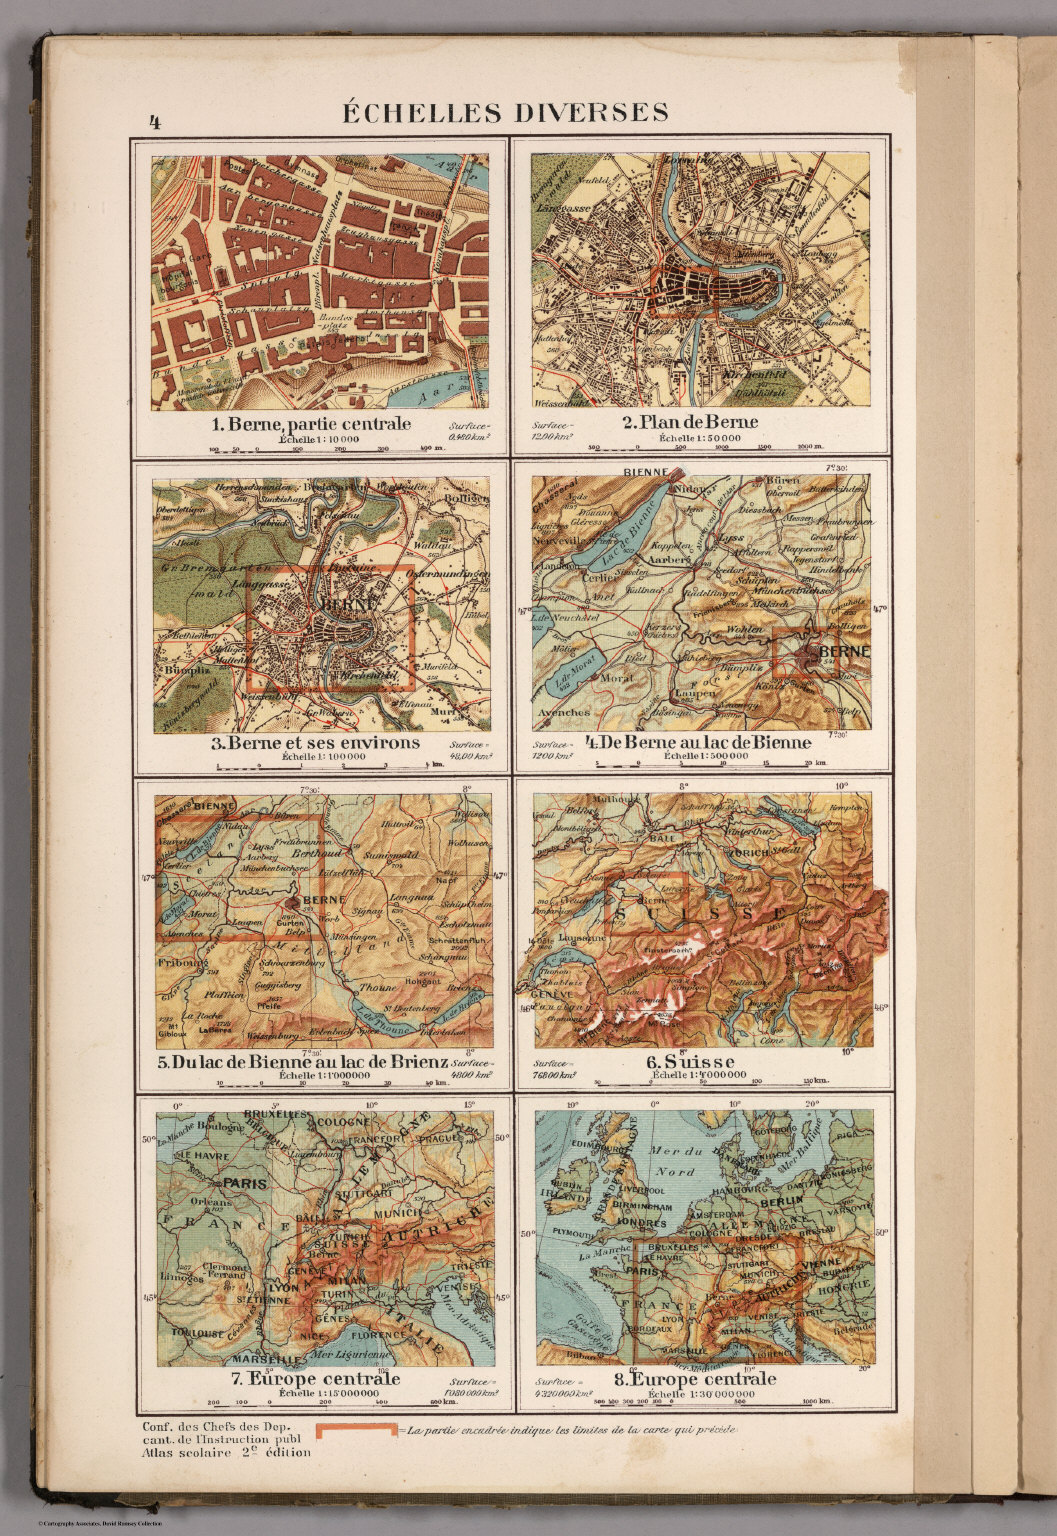 Echelles Diverses David Rumsey Historical Map Collection